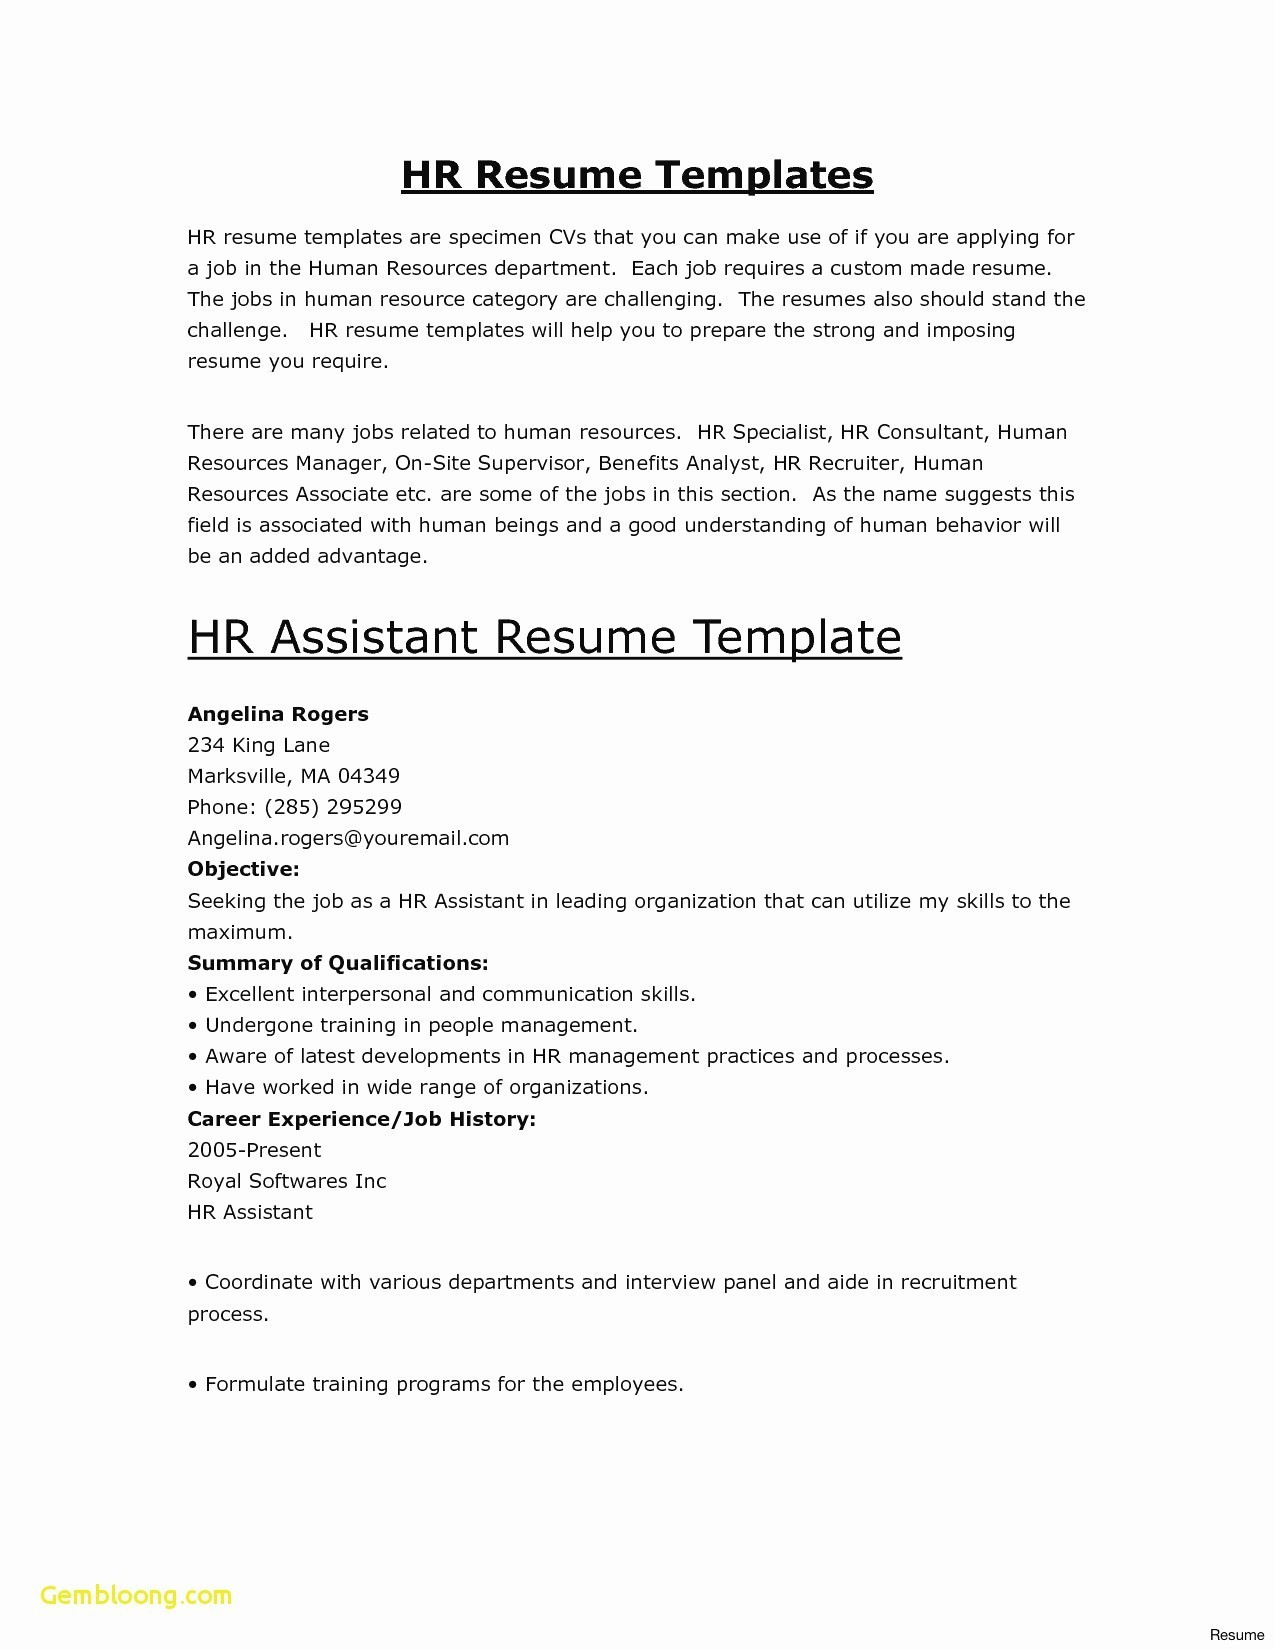 Resume How to Spell - Letter Good Conduct Template Gallery